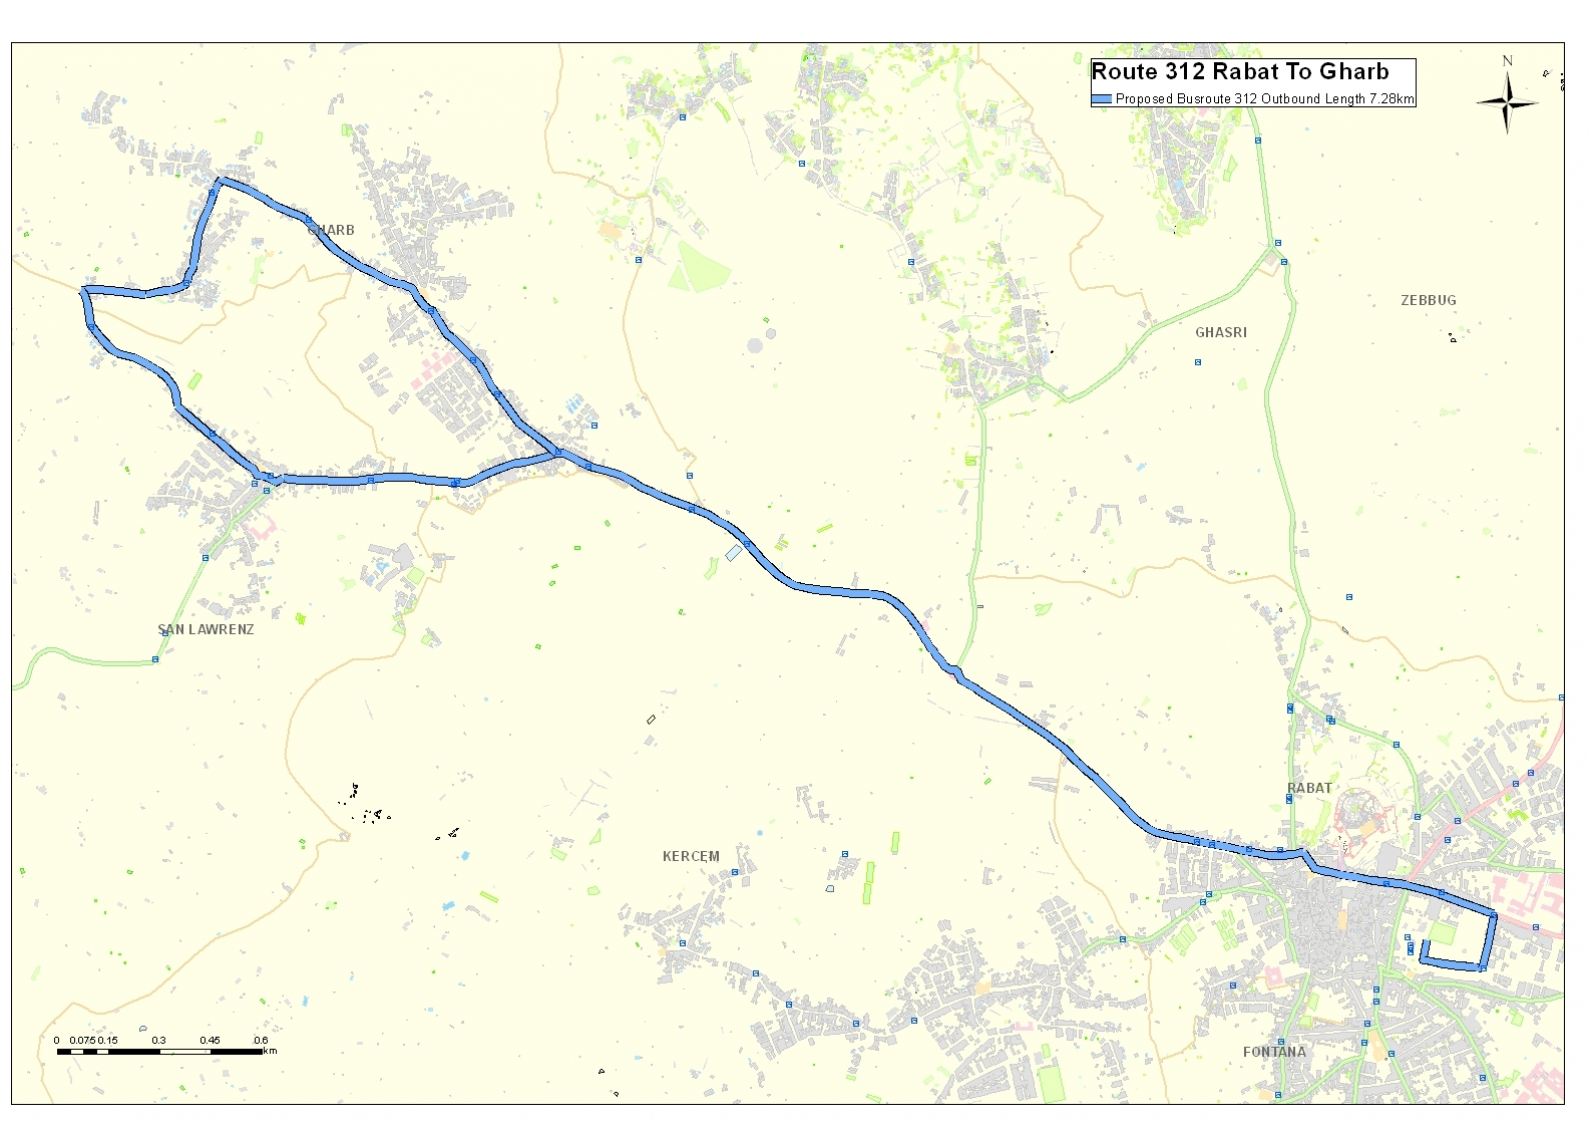 Land-current-network-routes-and-schedules-Gozo-24